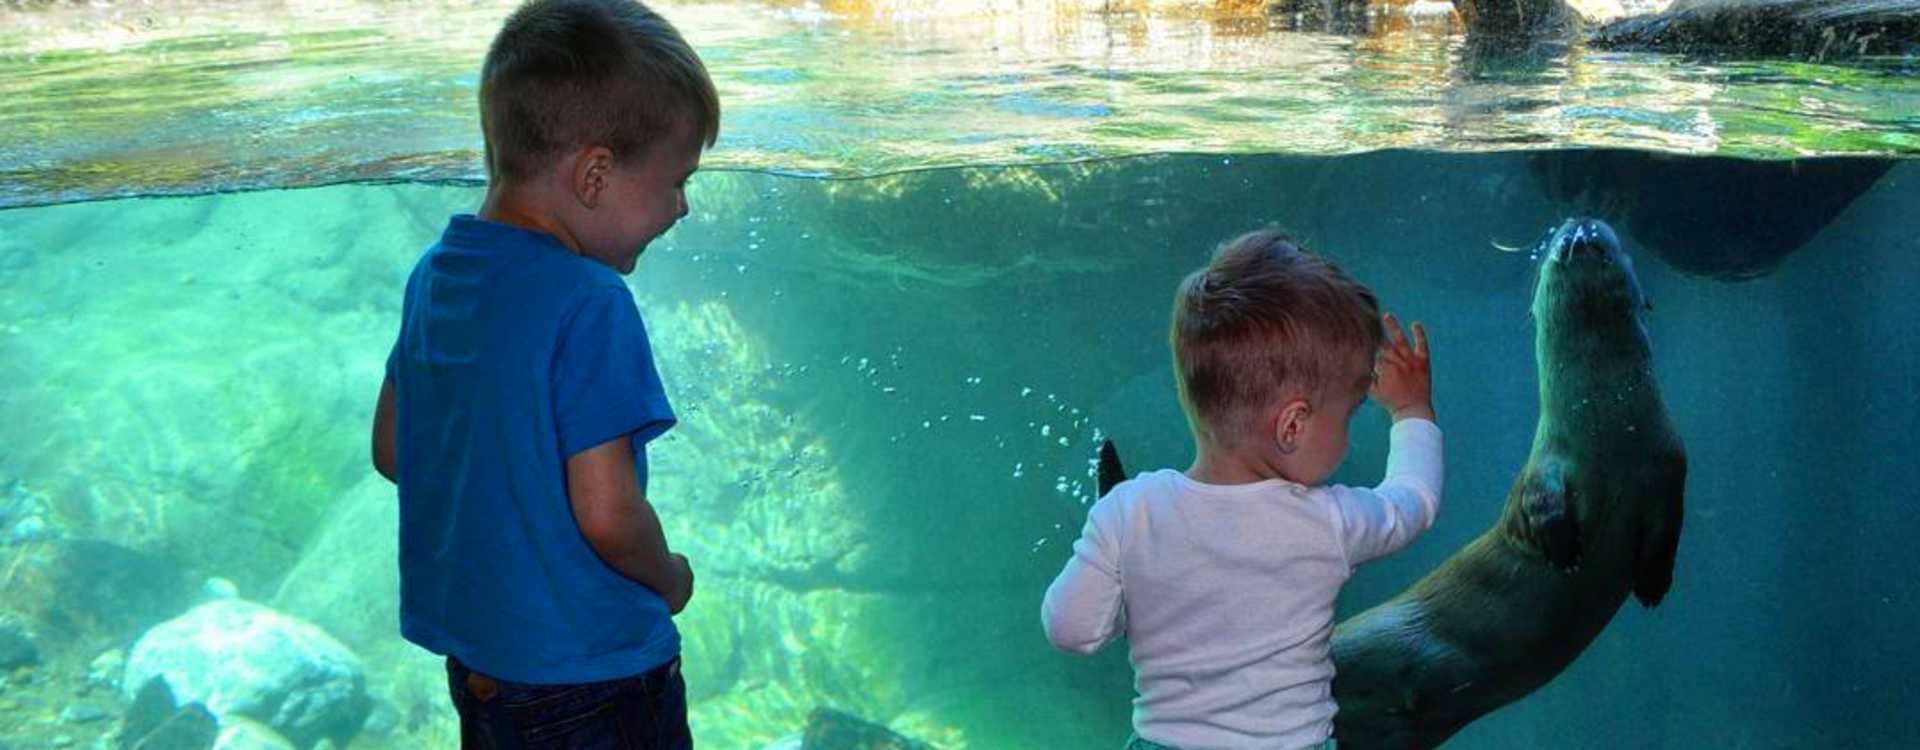 Boys play with Otter at Woodland Park Zoo in Seattle